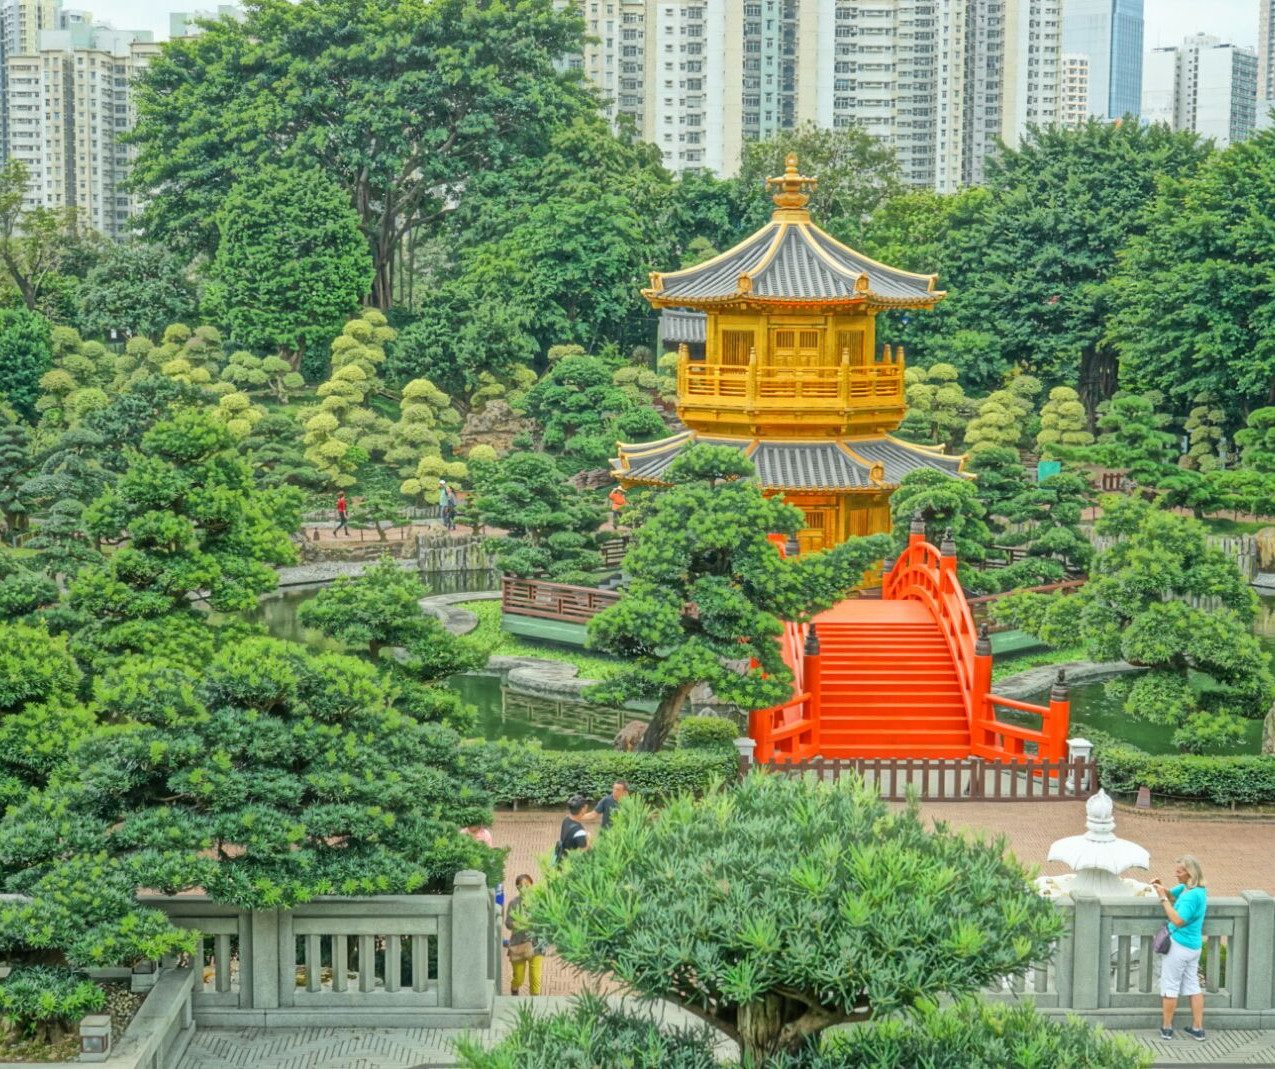 Beautiful golden temple at Nan Lian Garden in Hong Kong